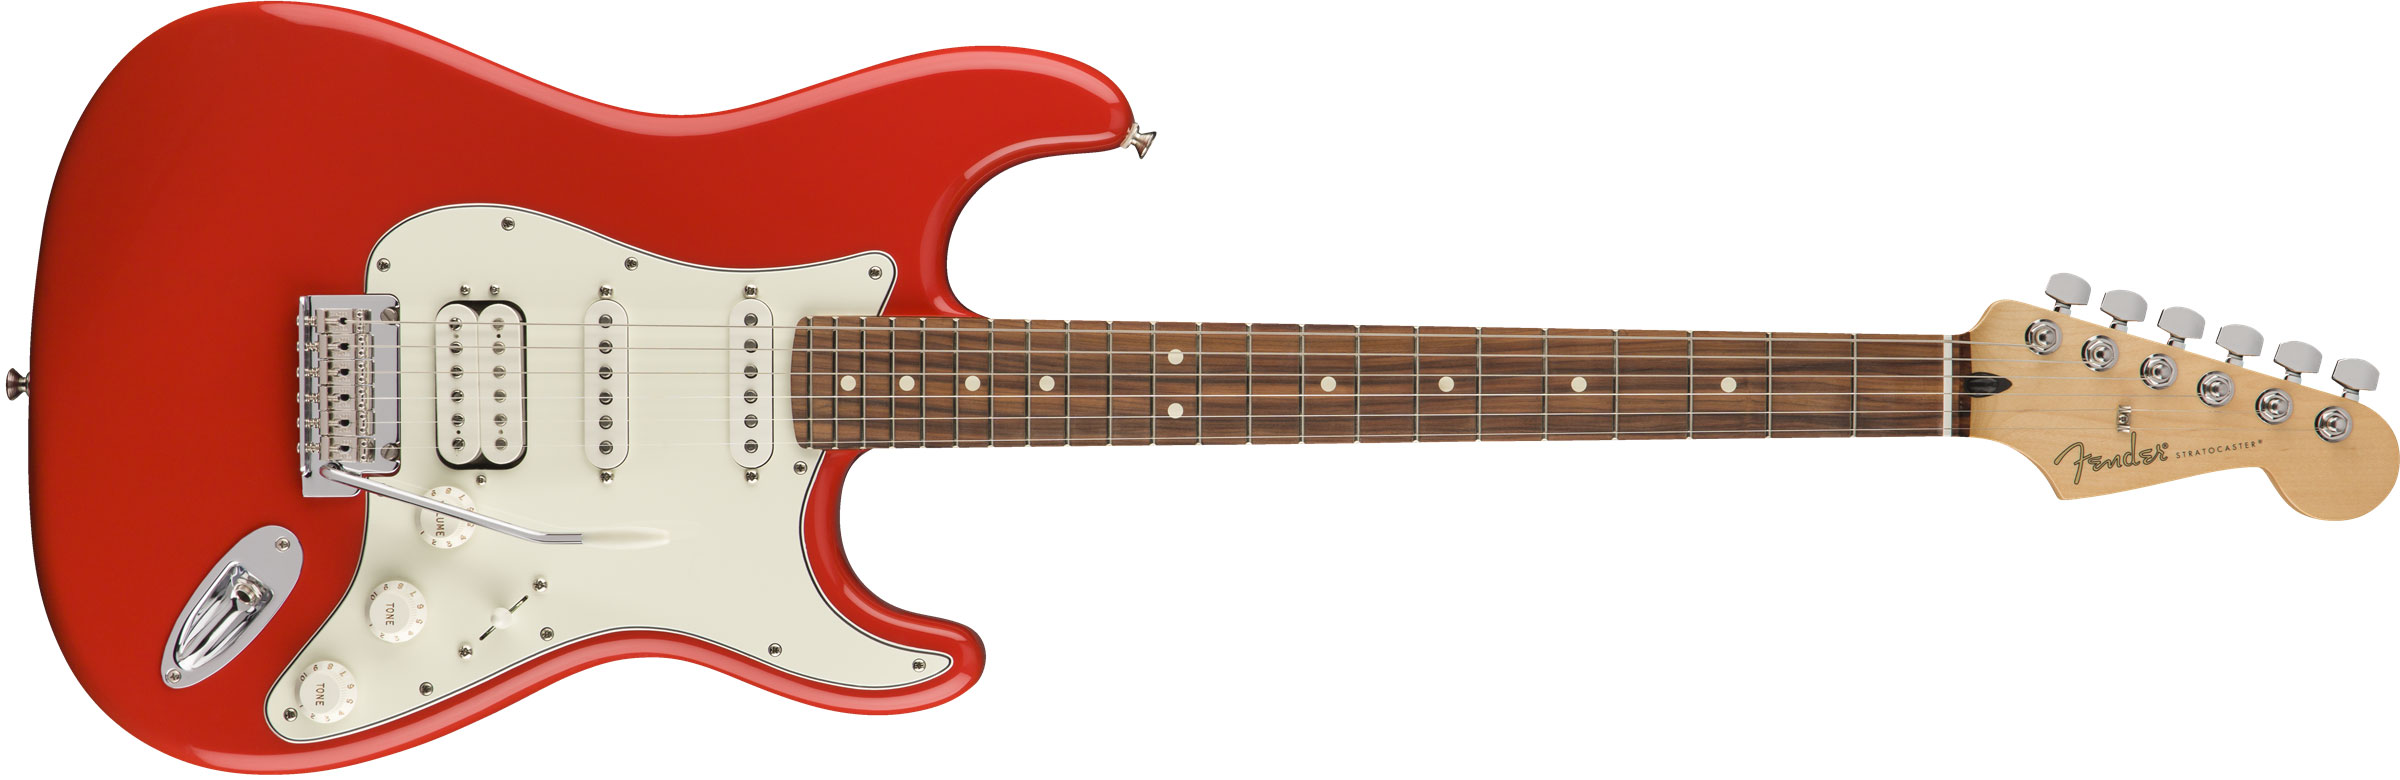 GUITARRA FENDER 014 4523 - PLAYER STRATOCASTER HSS PF - 525 - SONIC RED